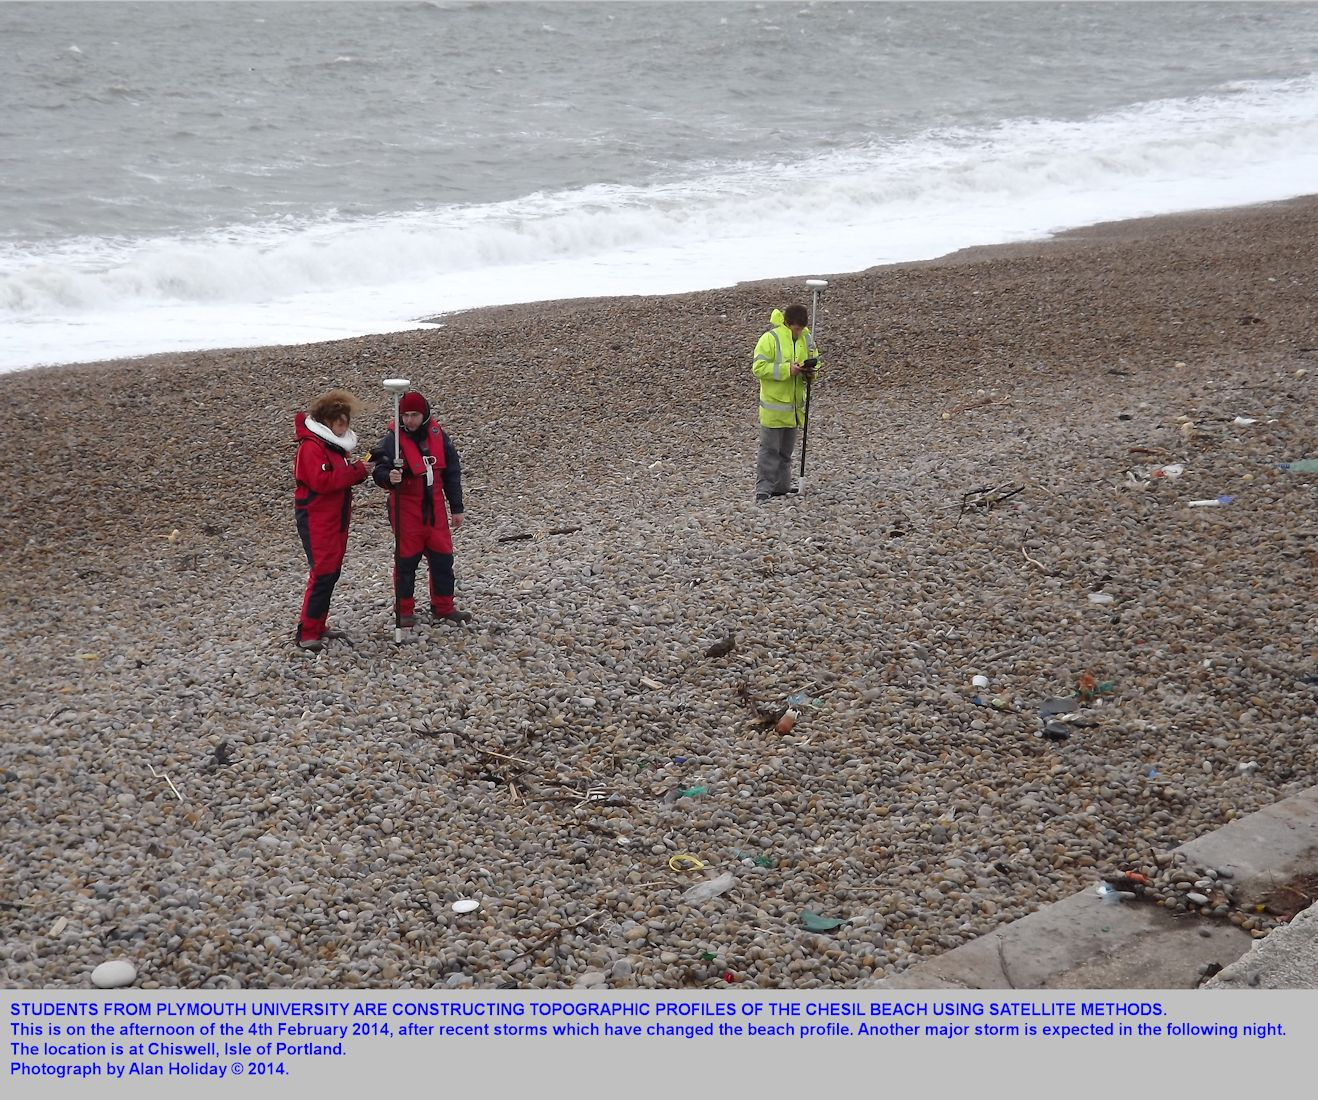 Students from Plymouth University use satellite methods to determine a cross-section profile of the Chesil Beach near the Cove House Inn, Chiswell, Dorset